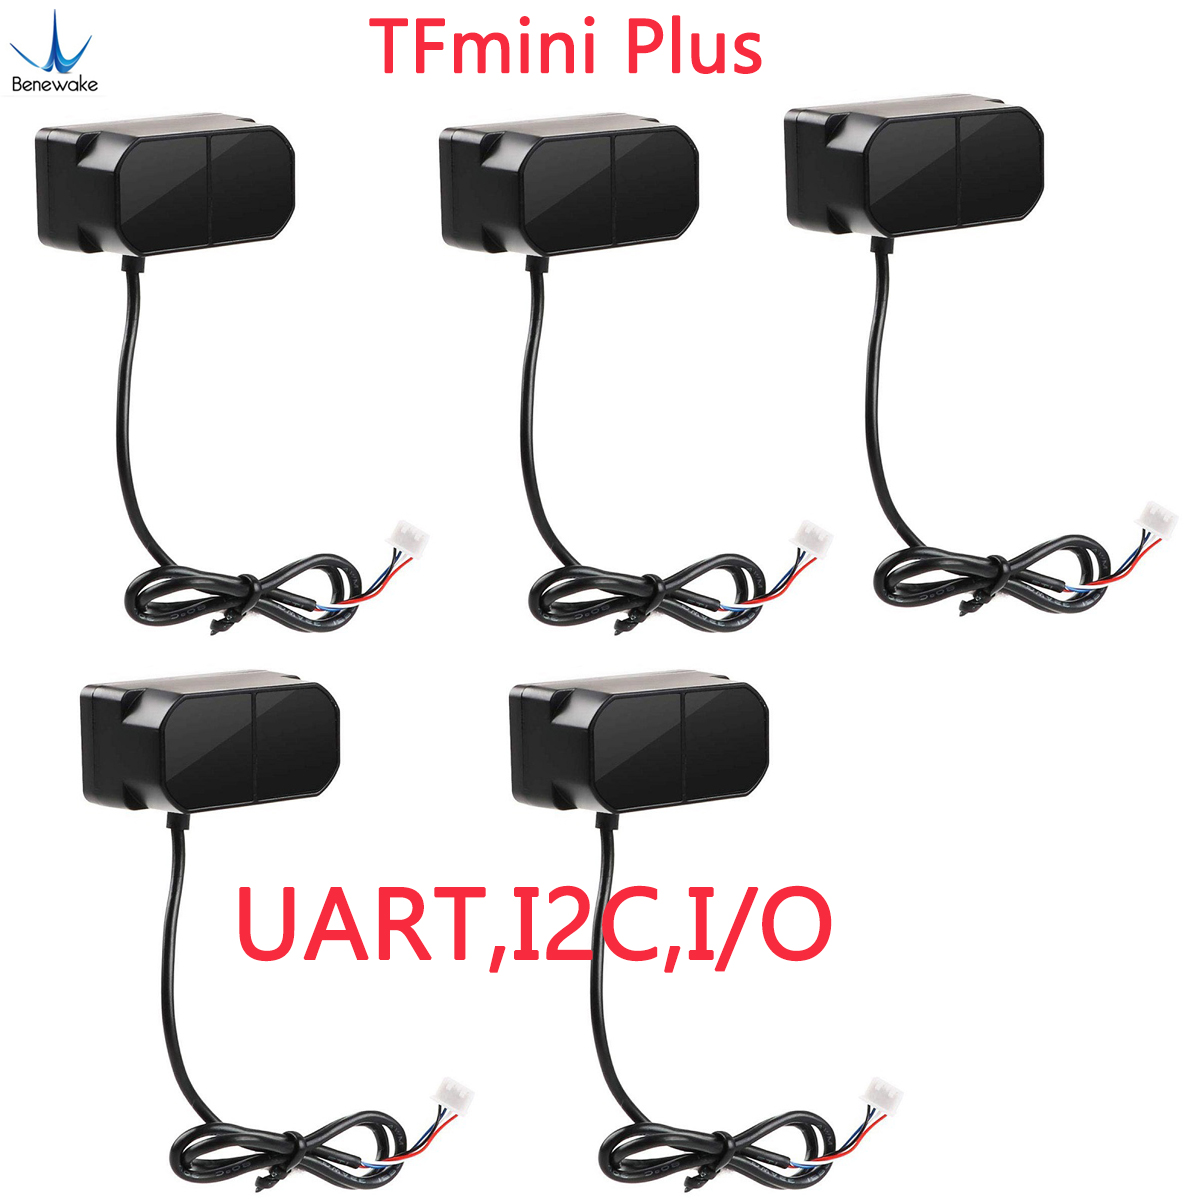 5pcs TFmini Plus Lidar Range Finder Sensor, IP65 Waterproof Dustproof Single-point Micro Ranging Module UART,I2C,I/O